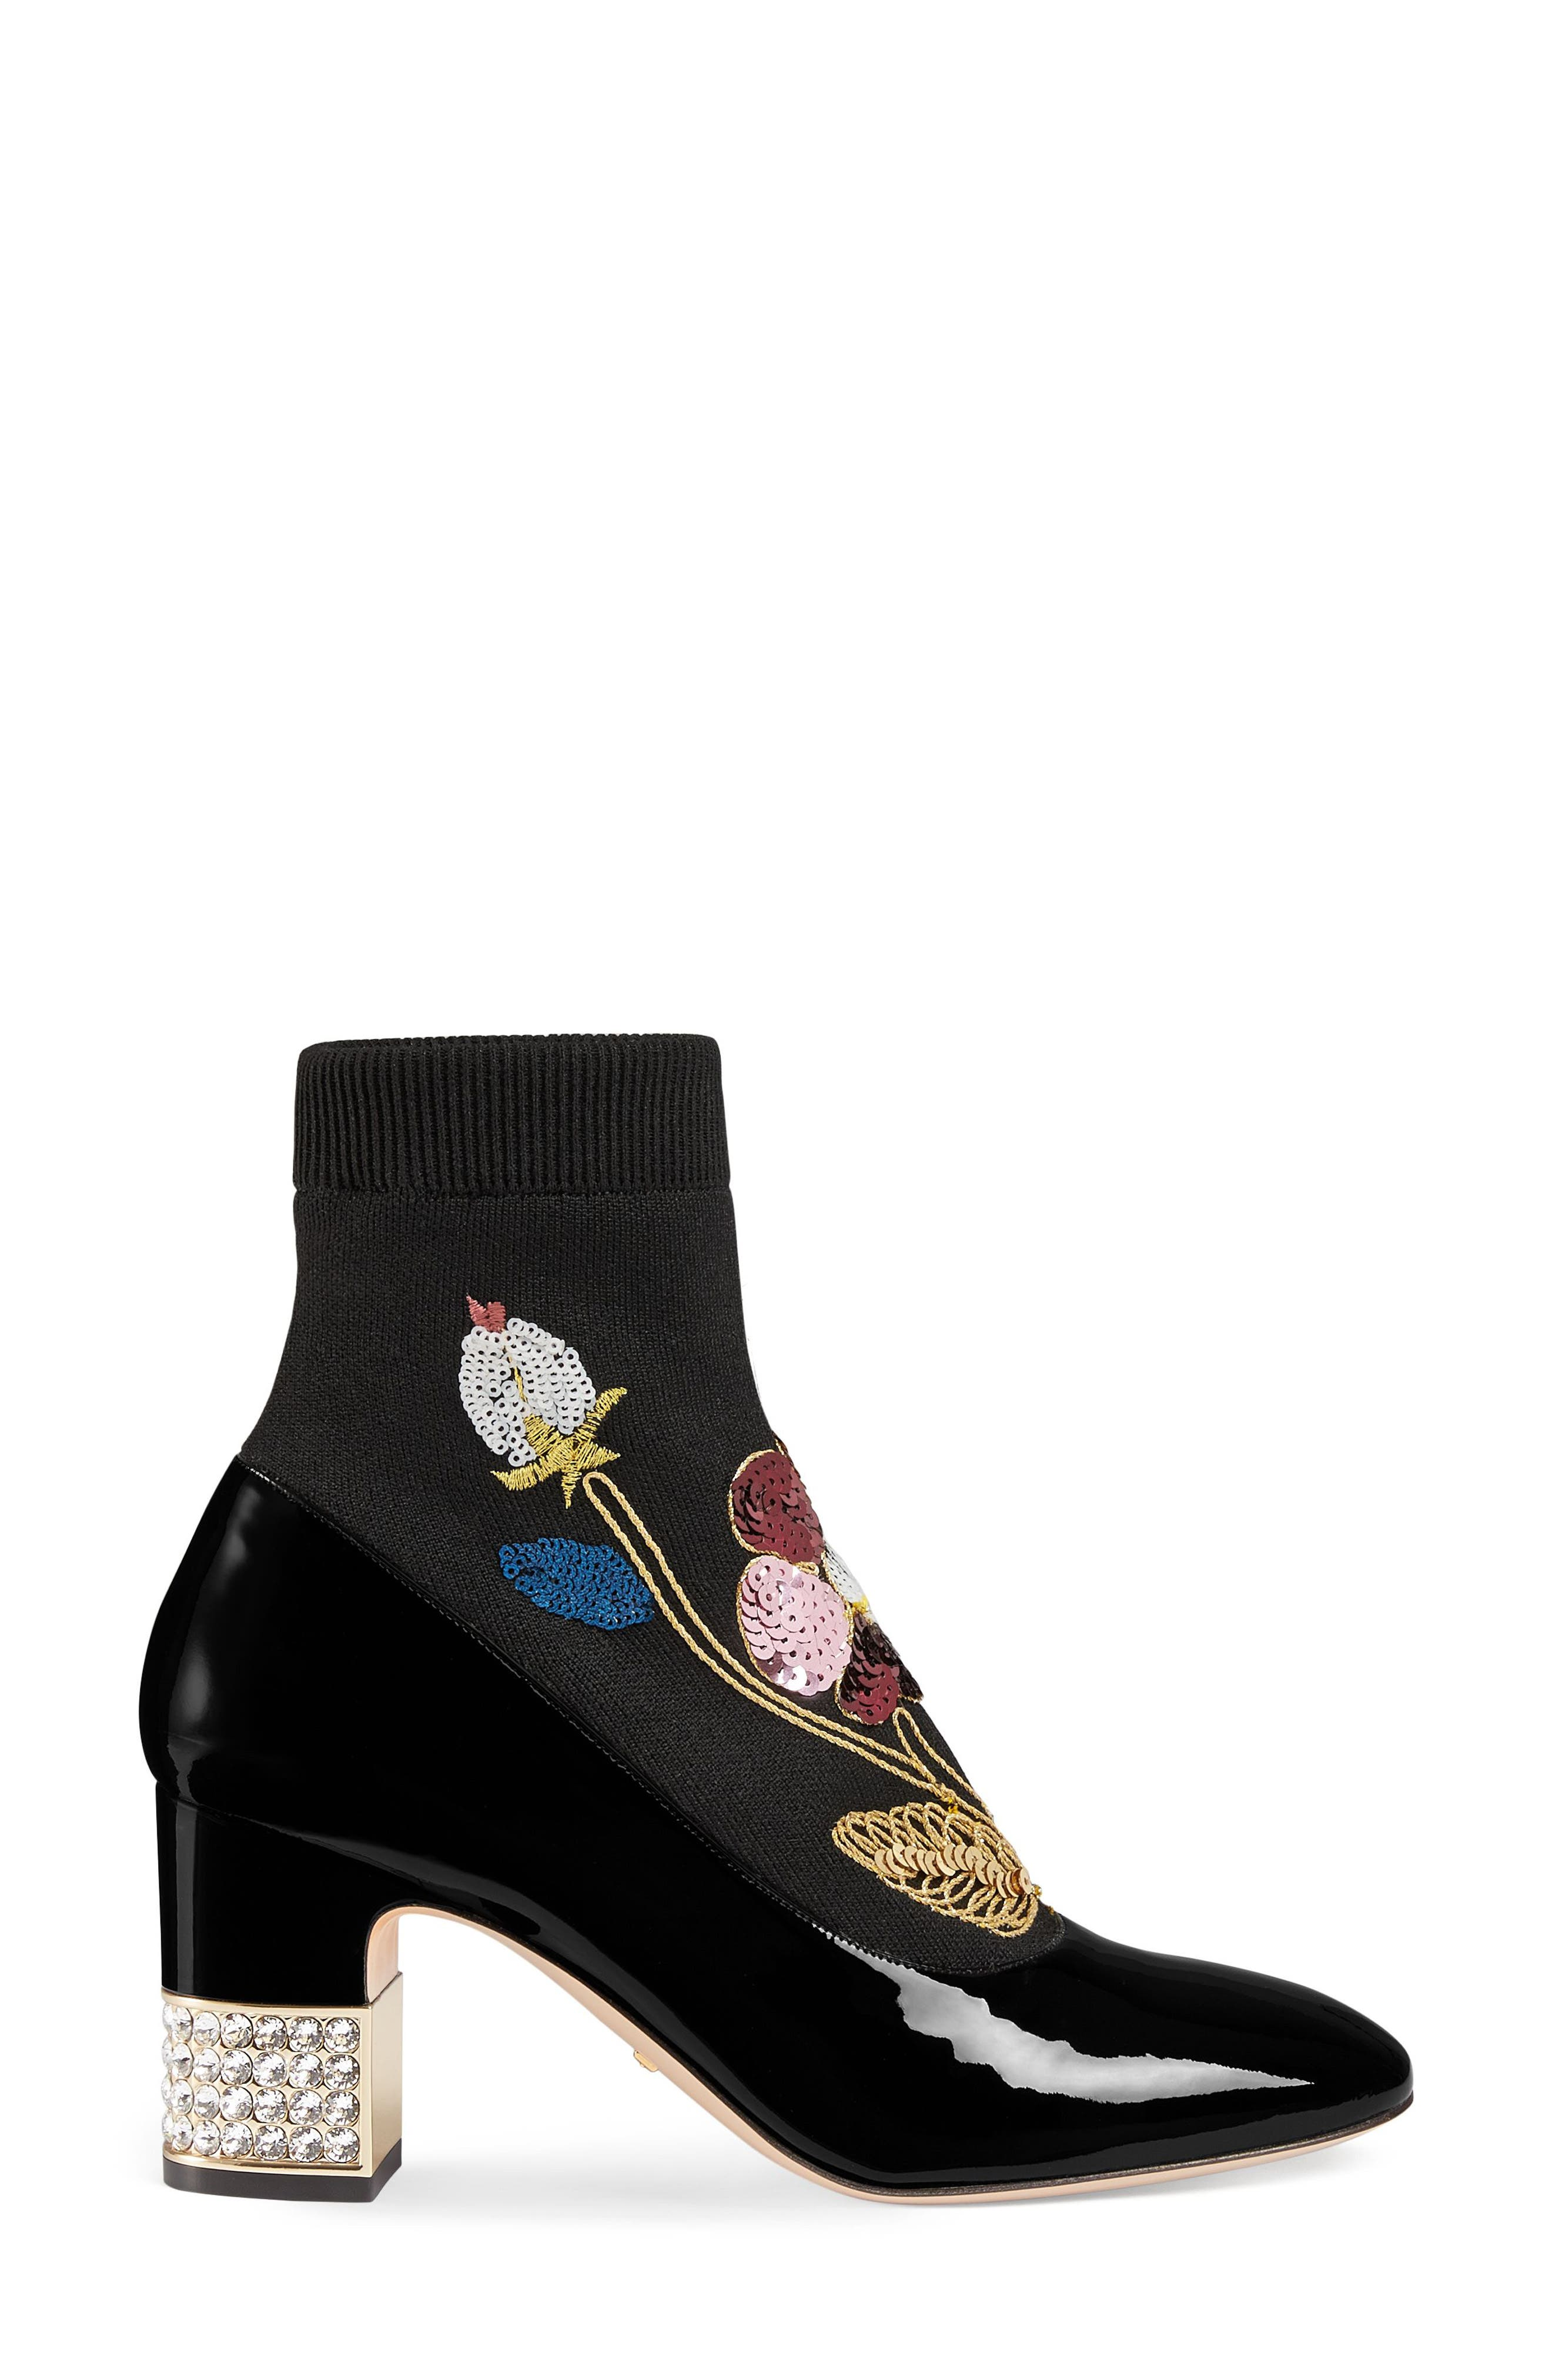 Alternate Image 2  - Gucci Candy Floral Embroidered Bootie (Women)